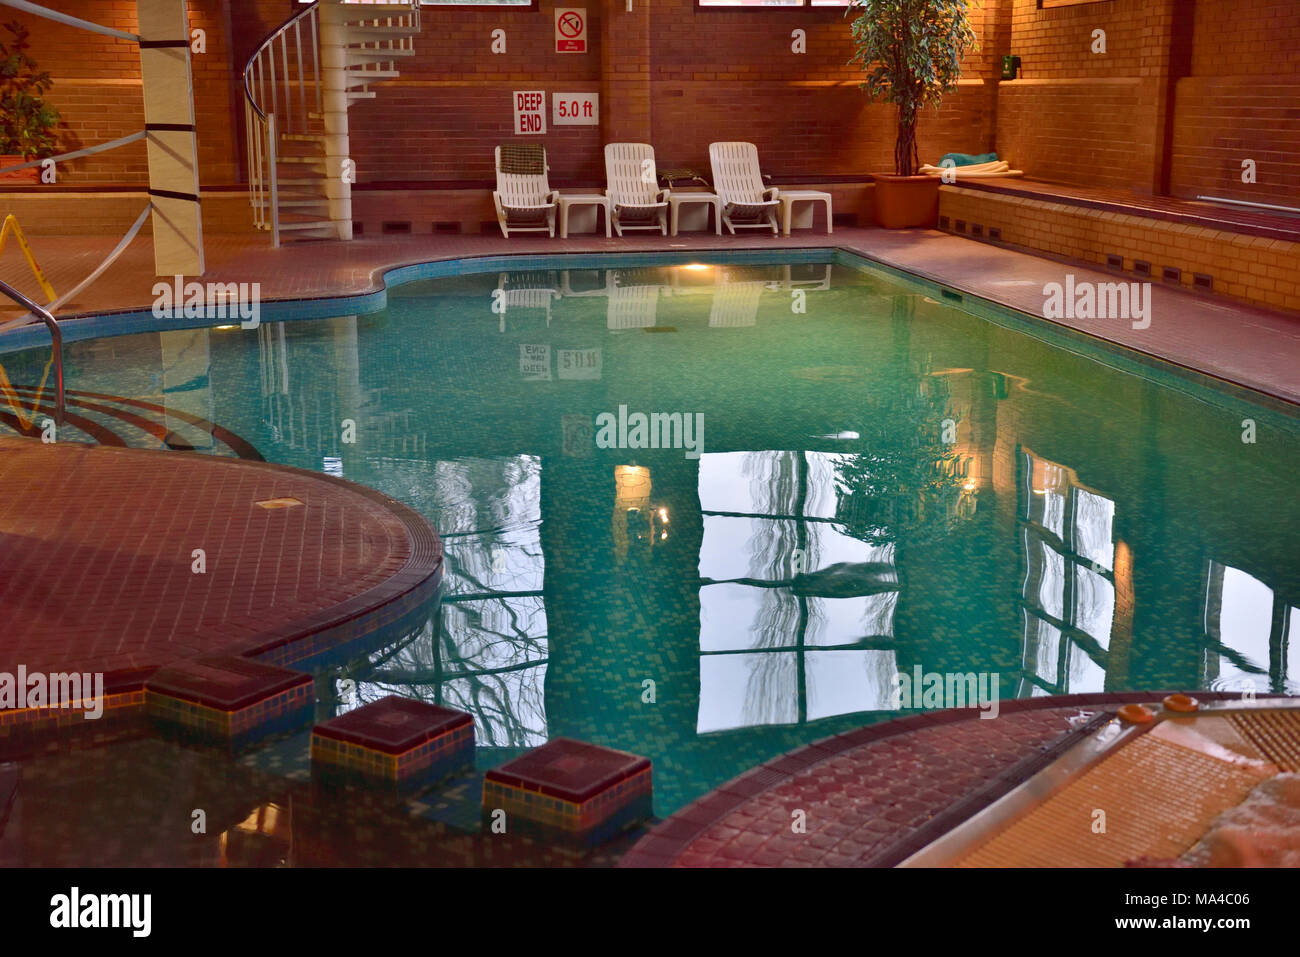 Hotel indoor swimming pool uk arden hotel leisure club - Hotels with swimming pools in birmingham ...